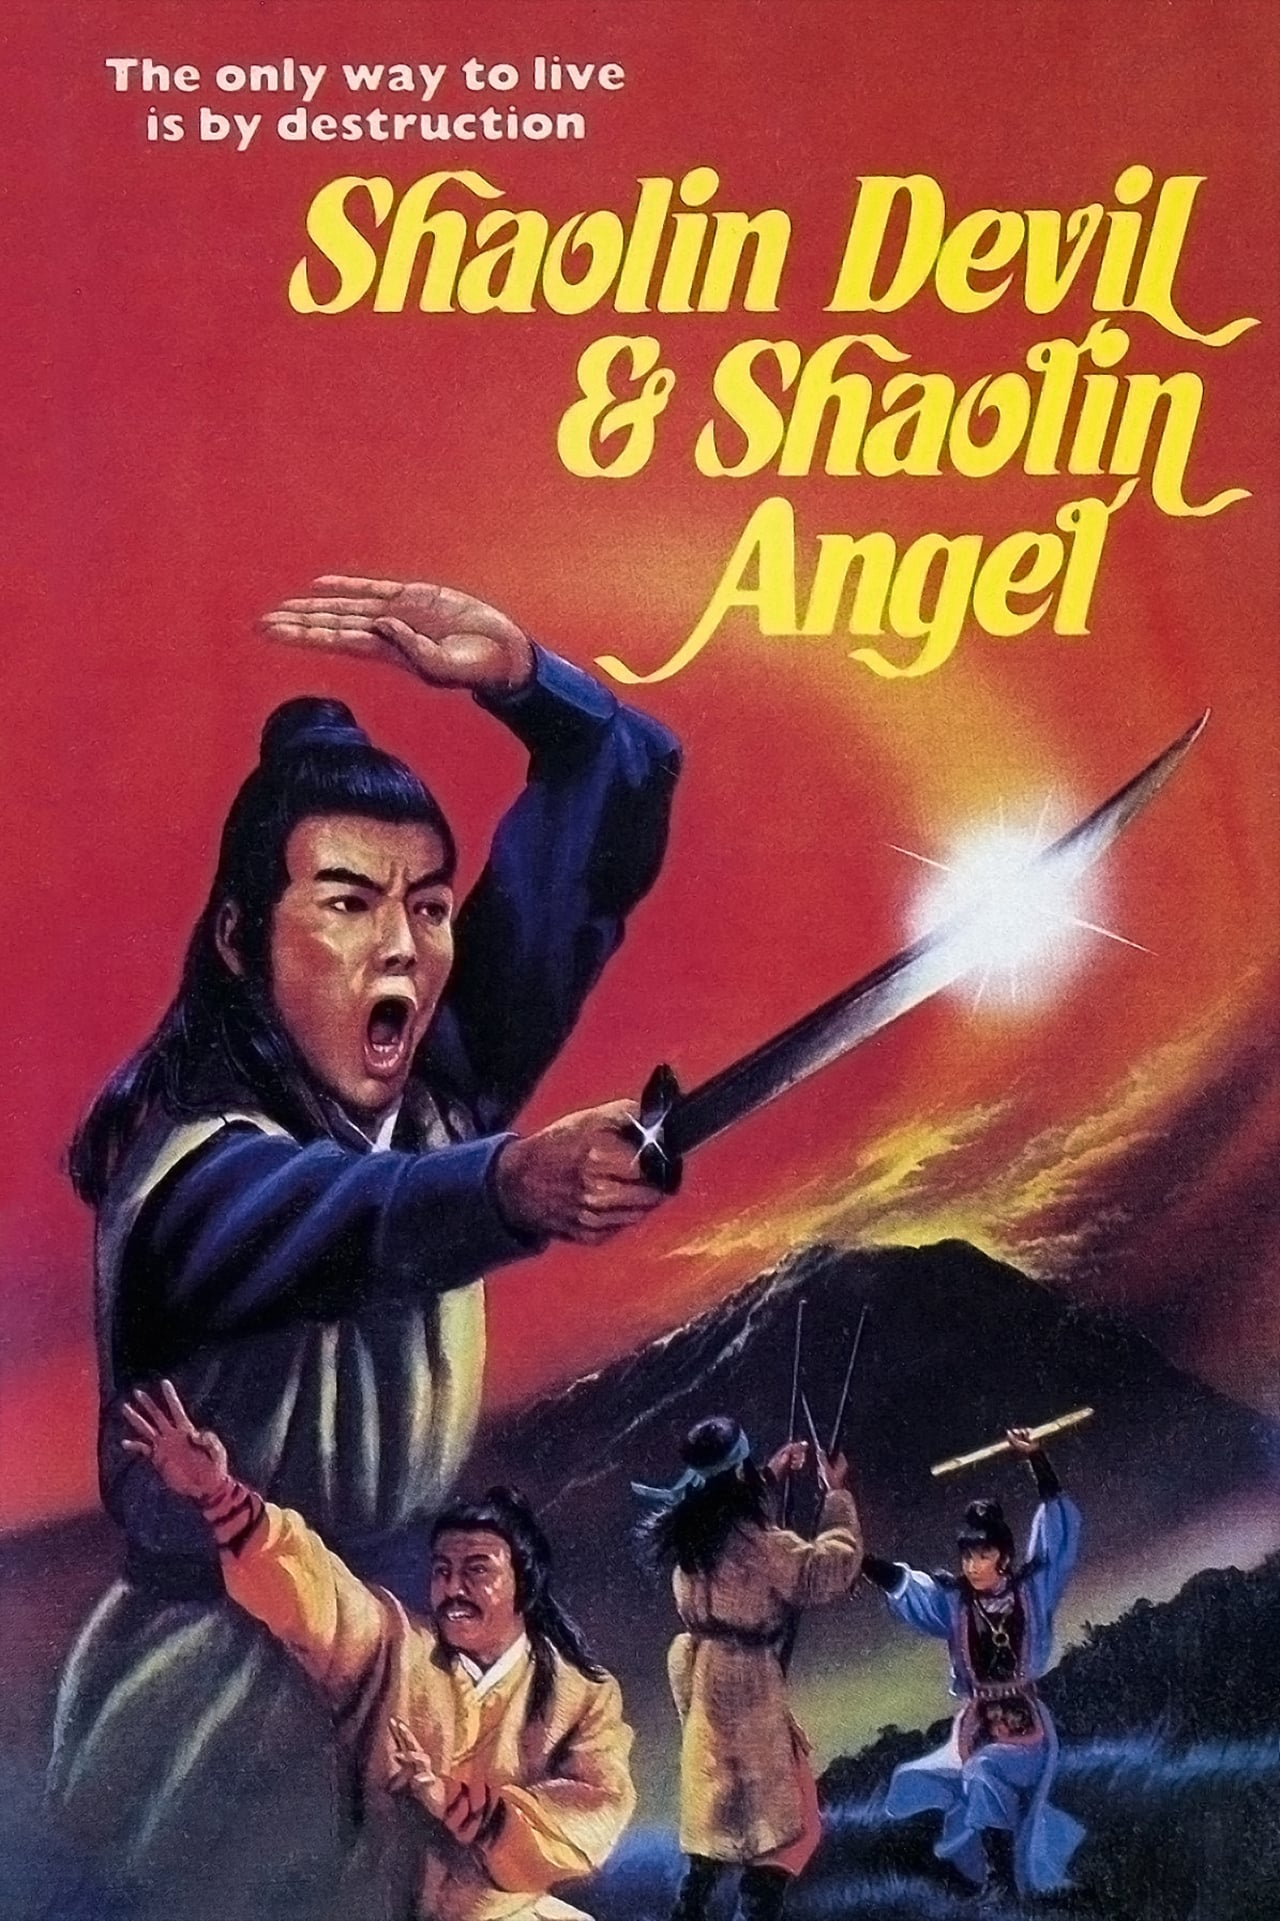 Shaolin Devil and Shaolin Angel